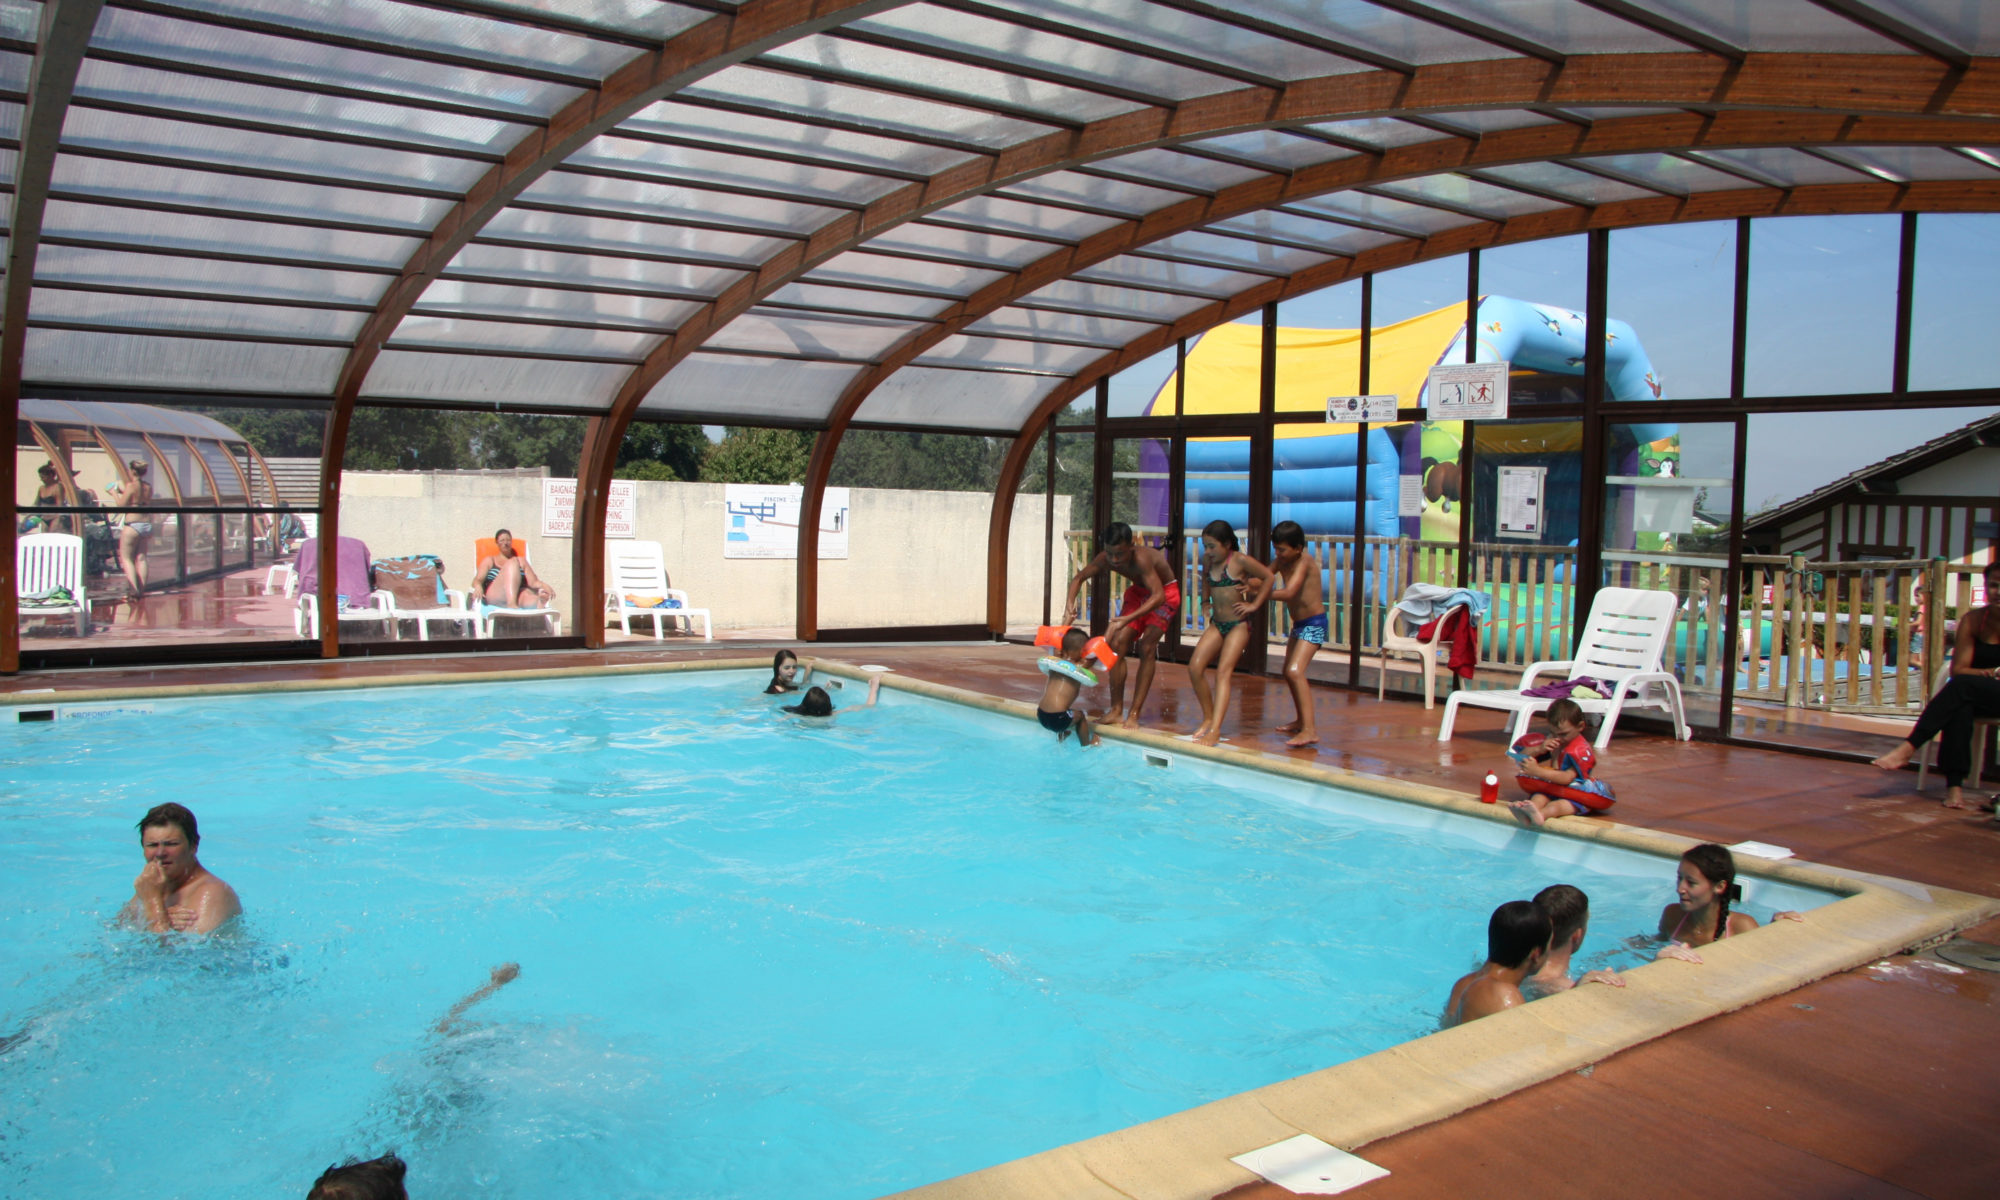 Our Indoor Heated Swimming Pool Offers: